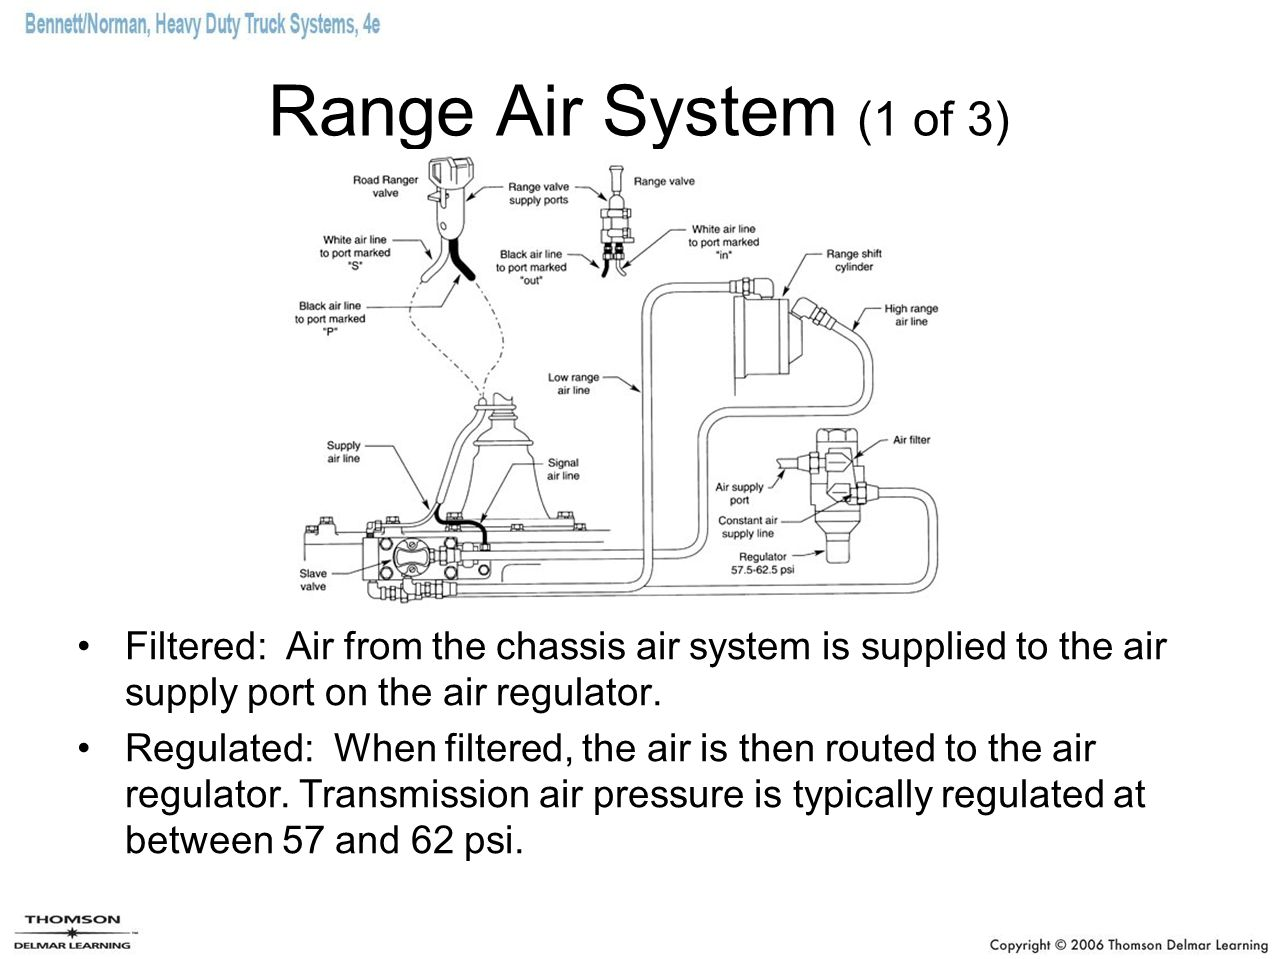 Range Air System (1 of 3)